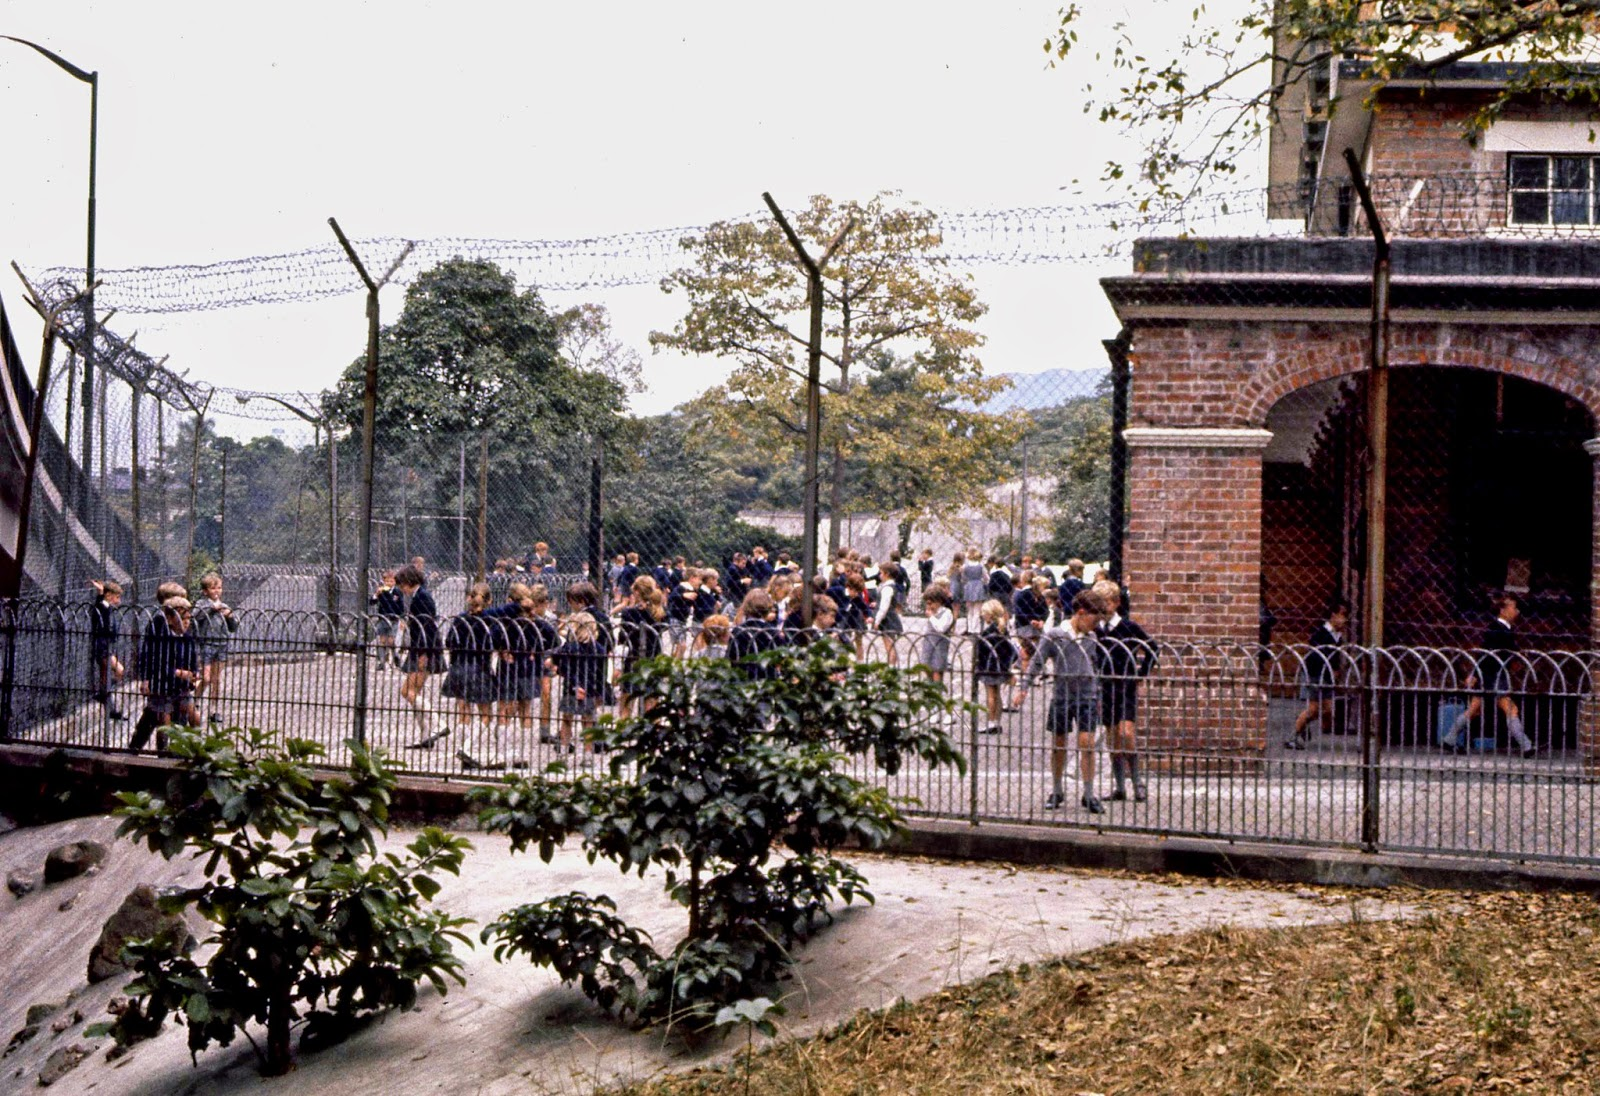 School children behind barbed wire - Hong Kong 1969